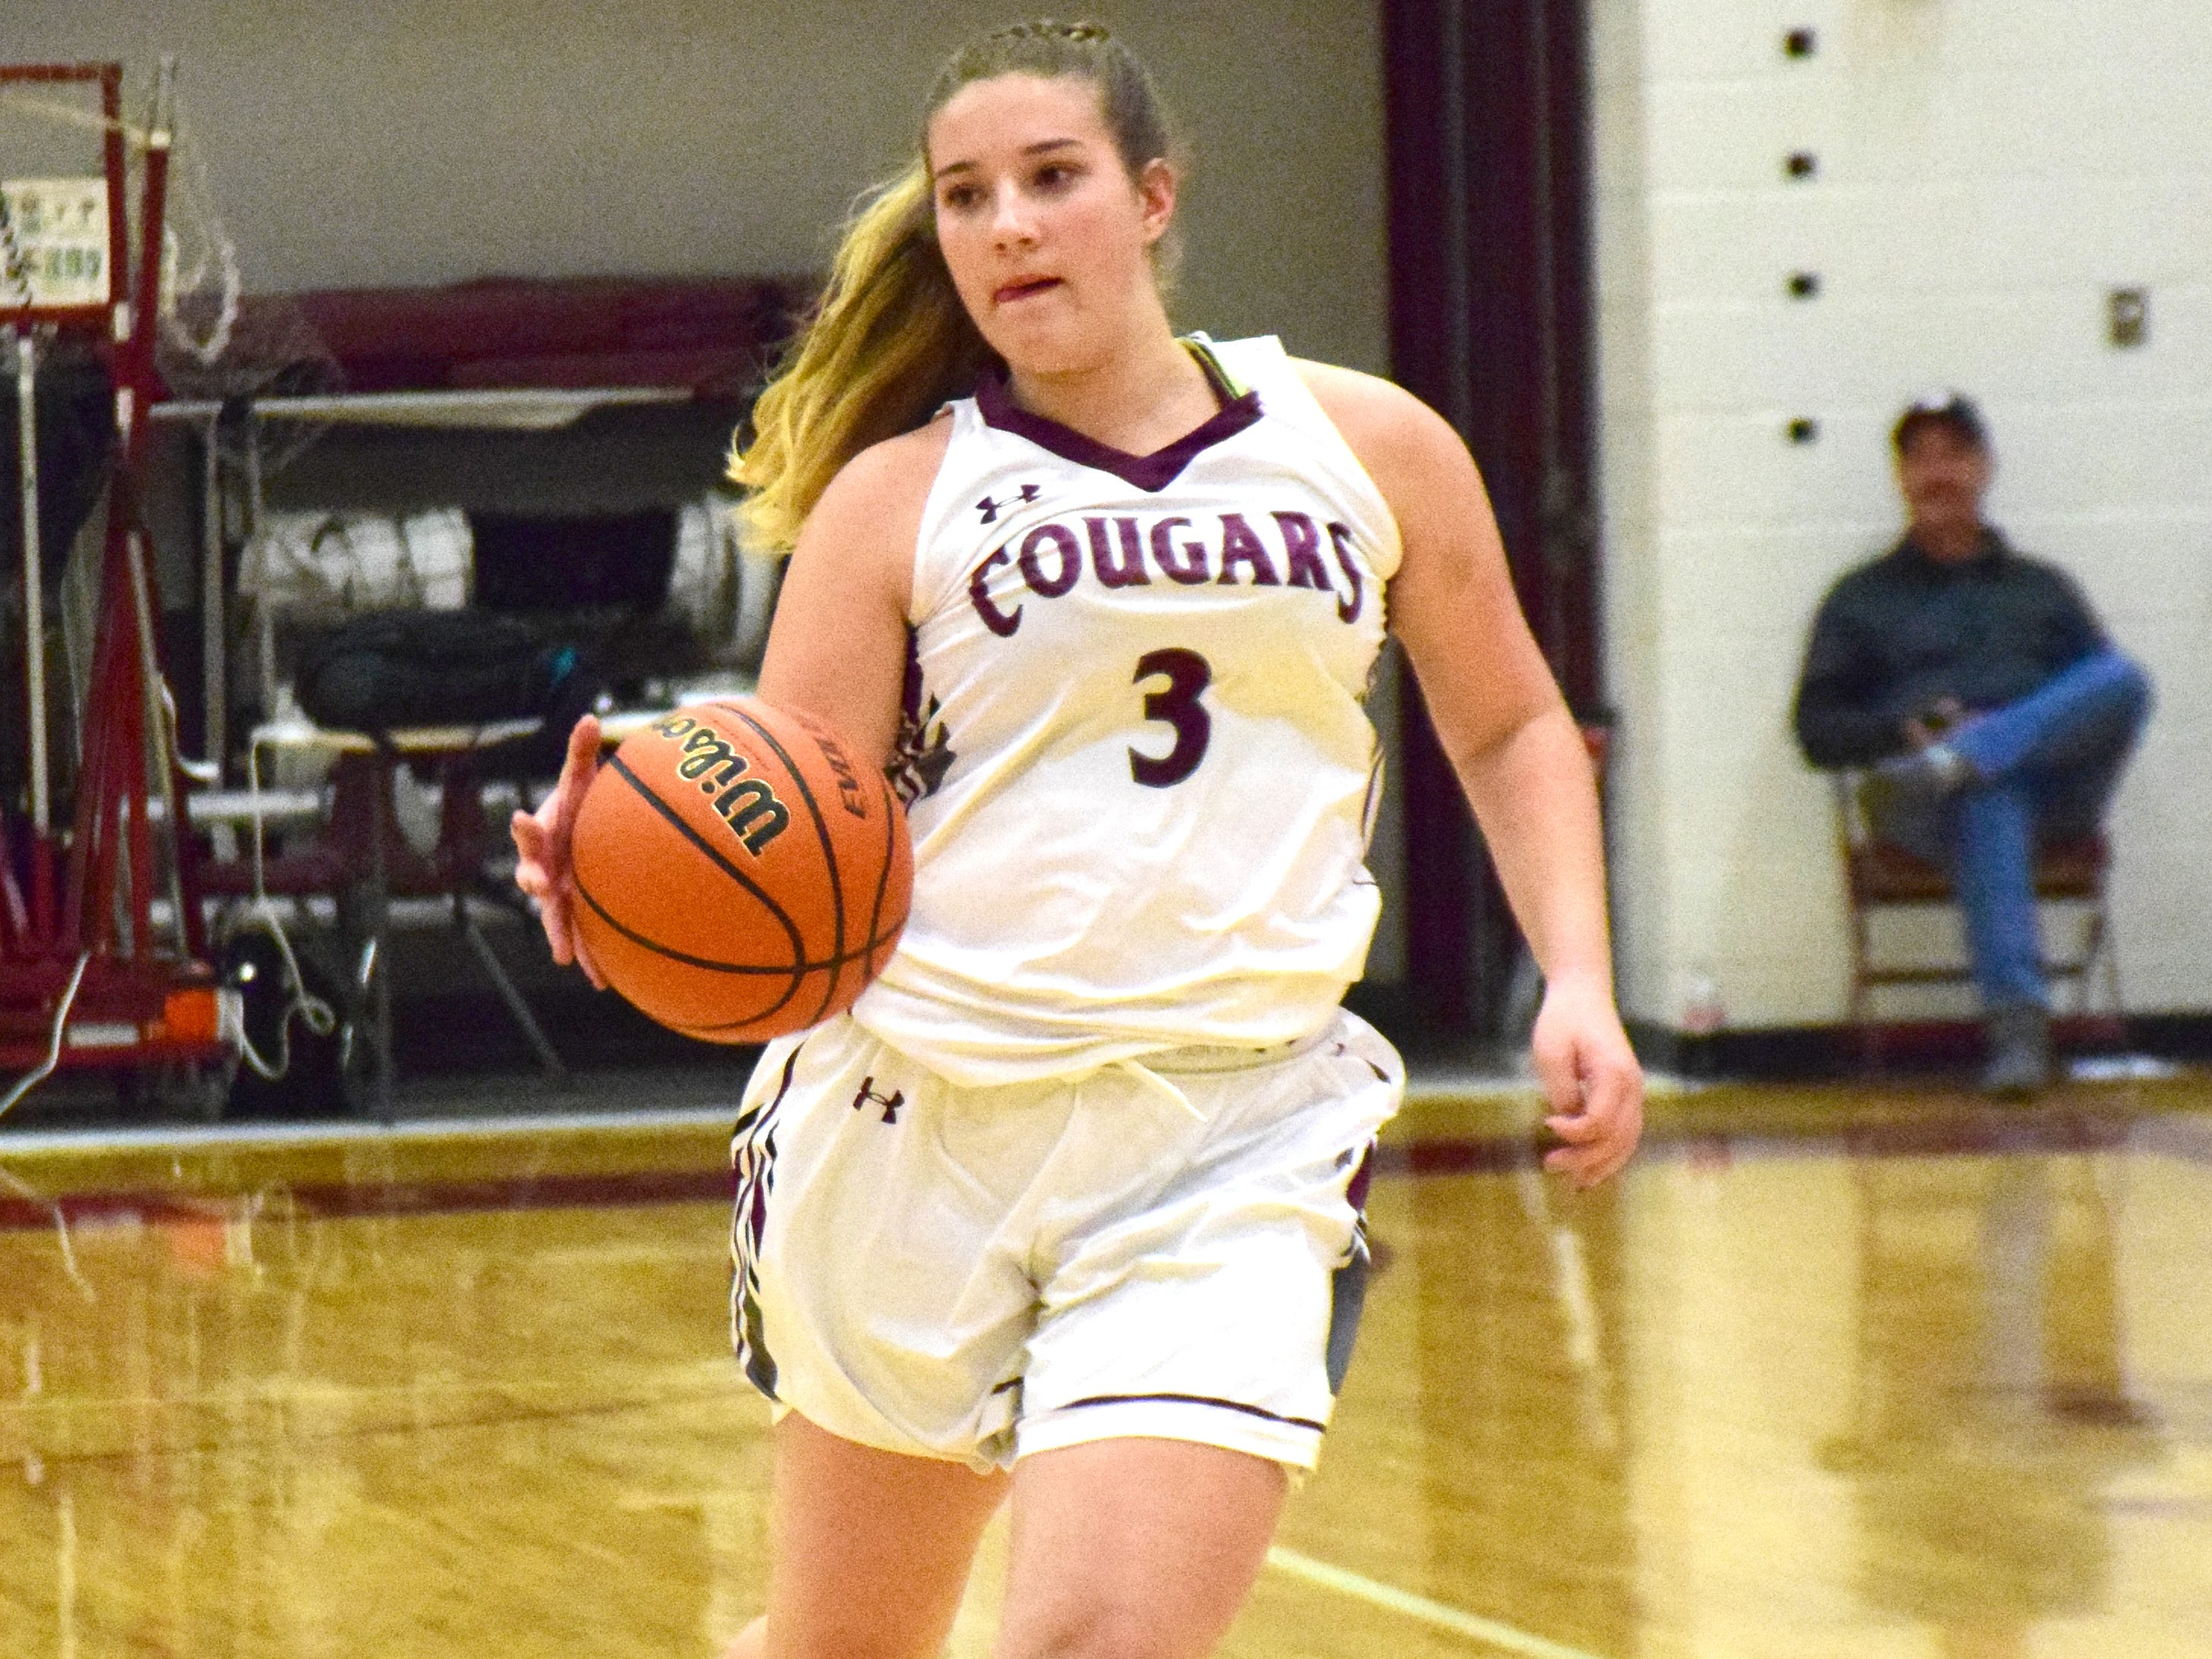 Stuarts Draft's McKinley Fitzgerald brings the ball up against Page County during the first half of their Shenandoah District girls basketball game on Thursday, Jan. 10, 2019, at Stuarts Draft High School in Stuarts Draft, Va.